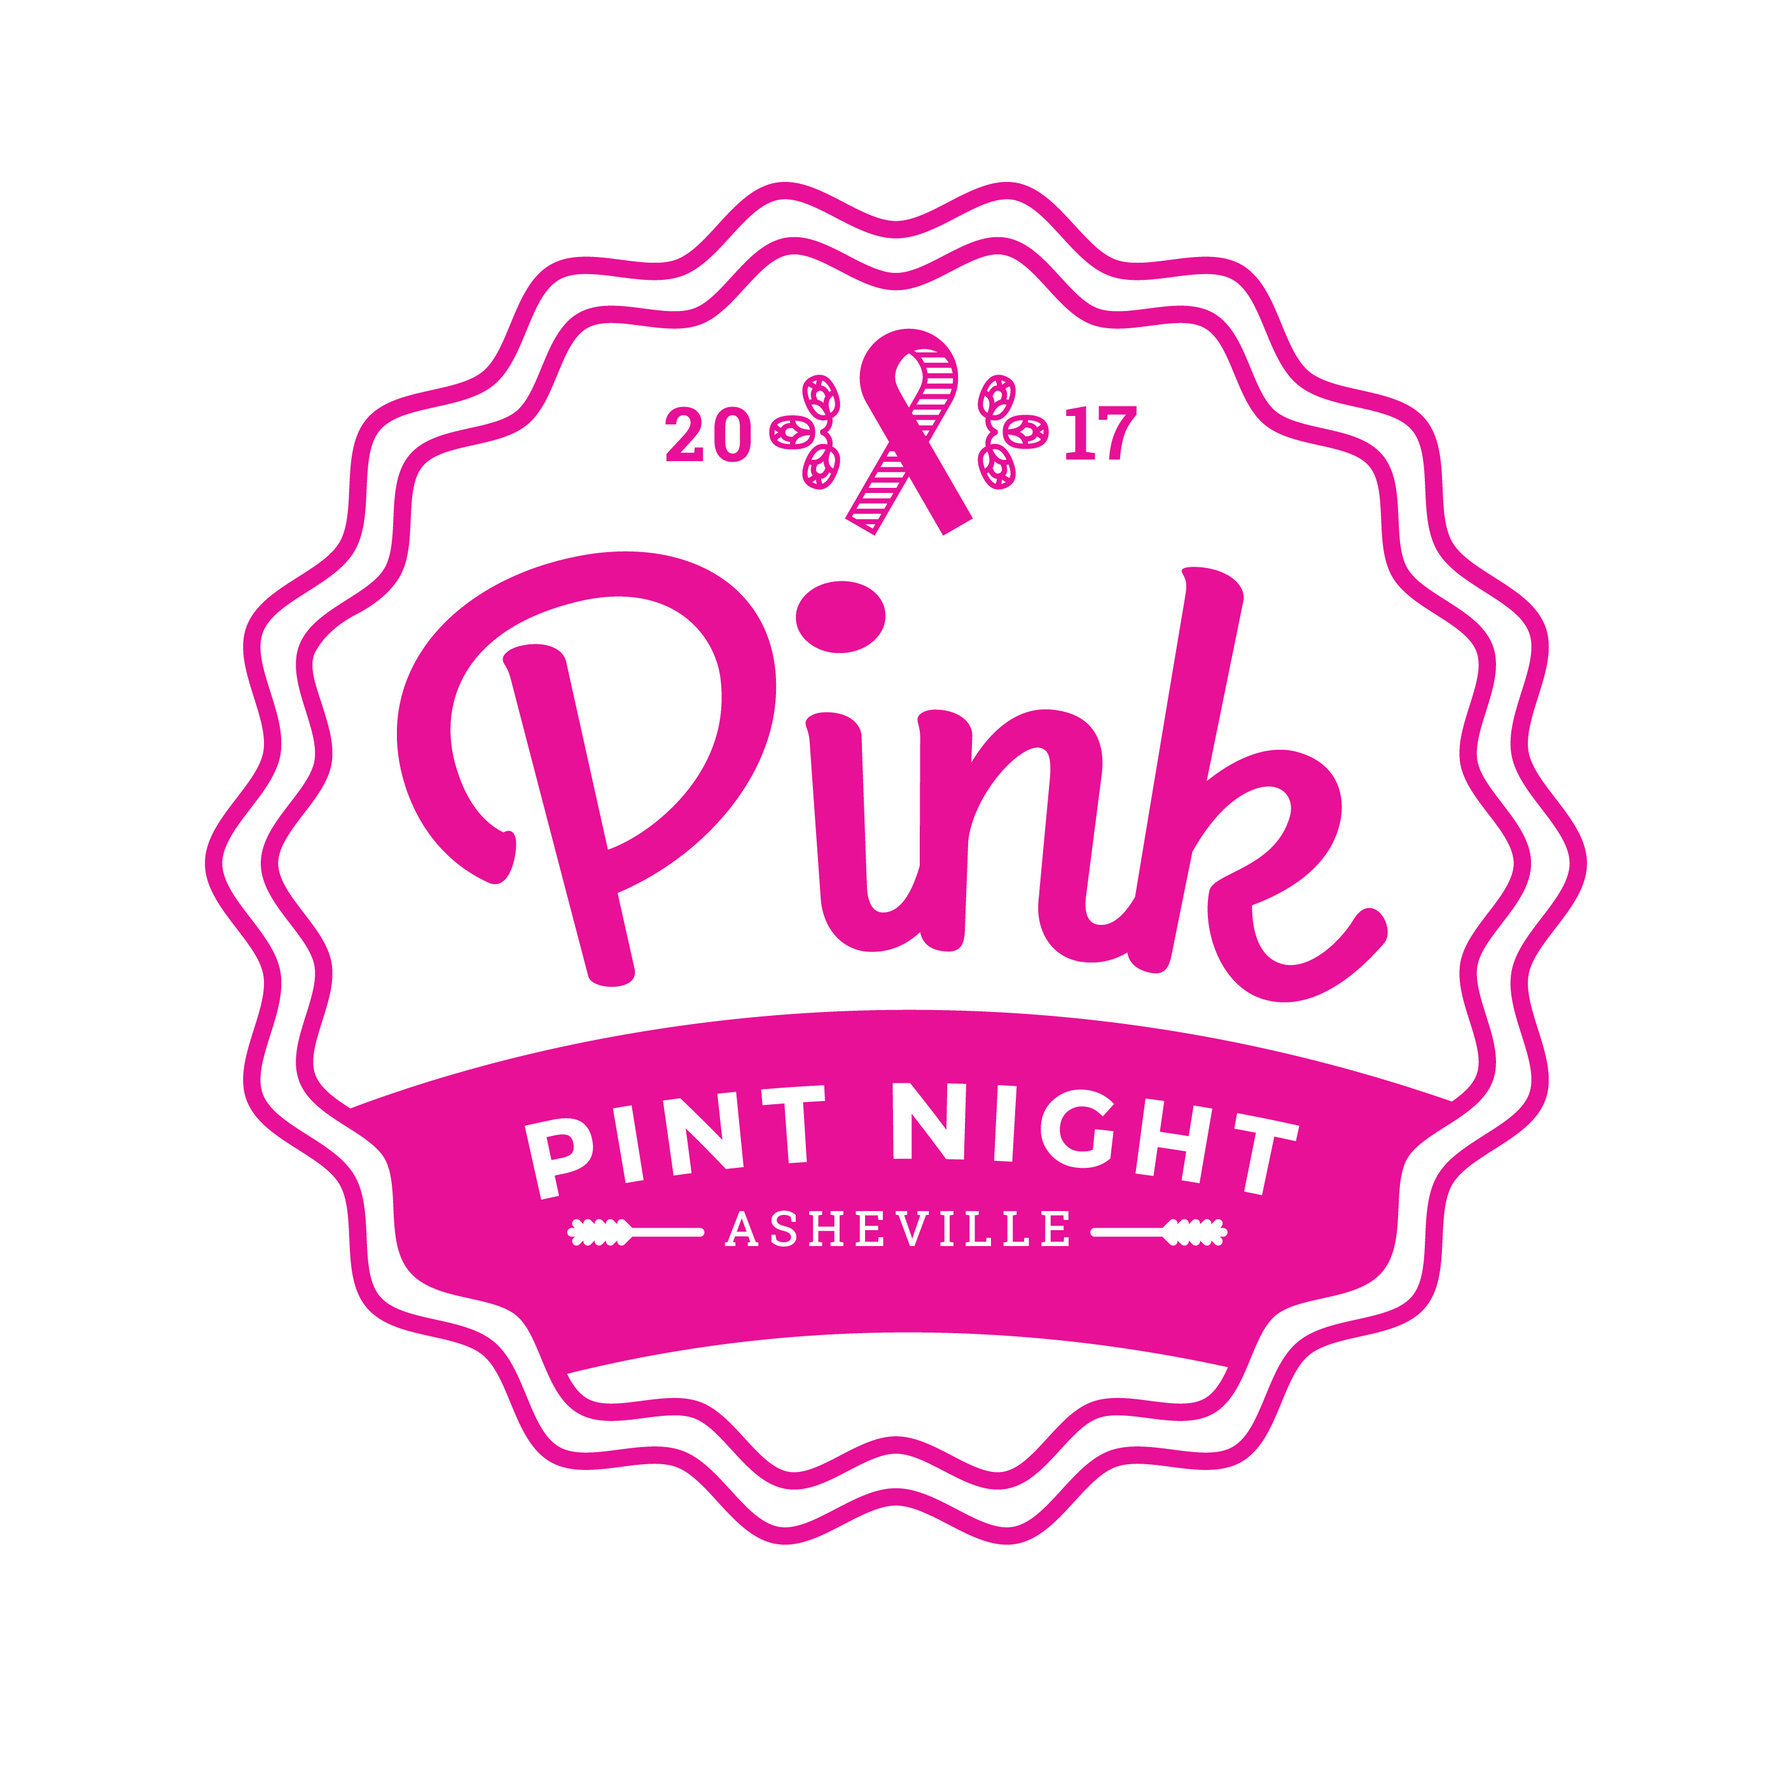 IMG23-Pink-Pint-Night-Logo_17.jpg